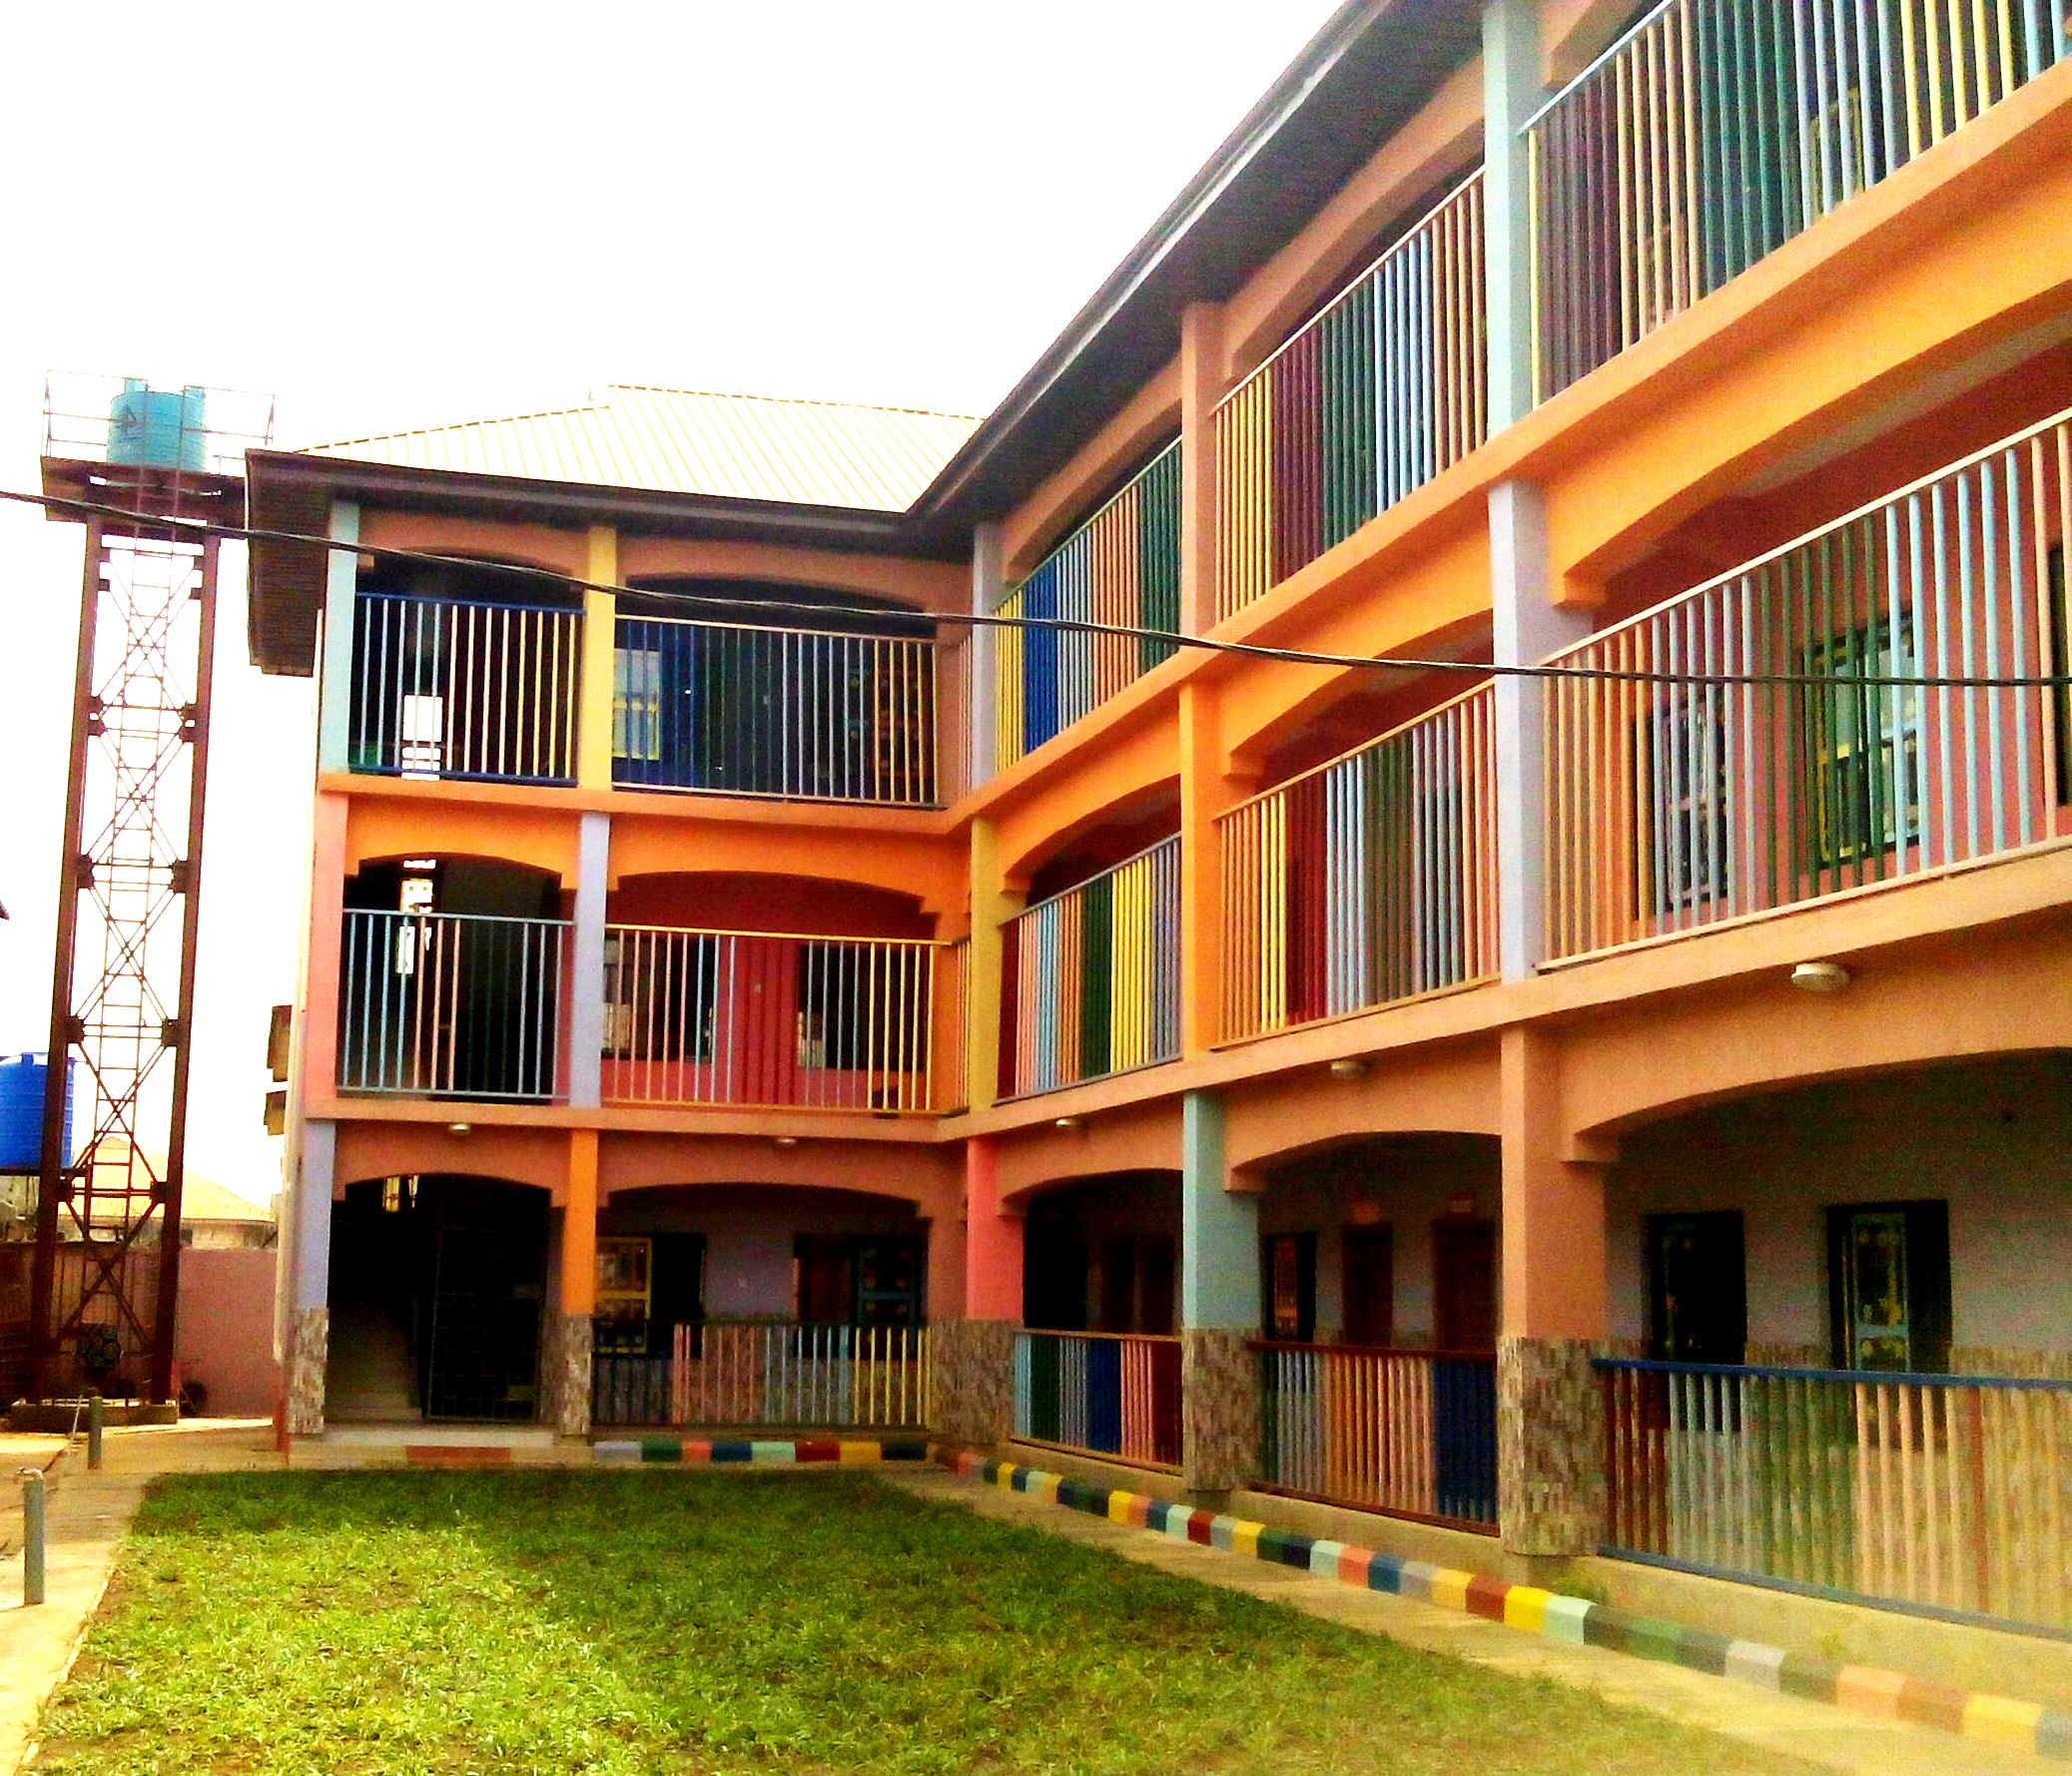 Garland School compound